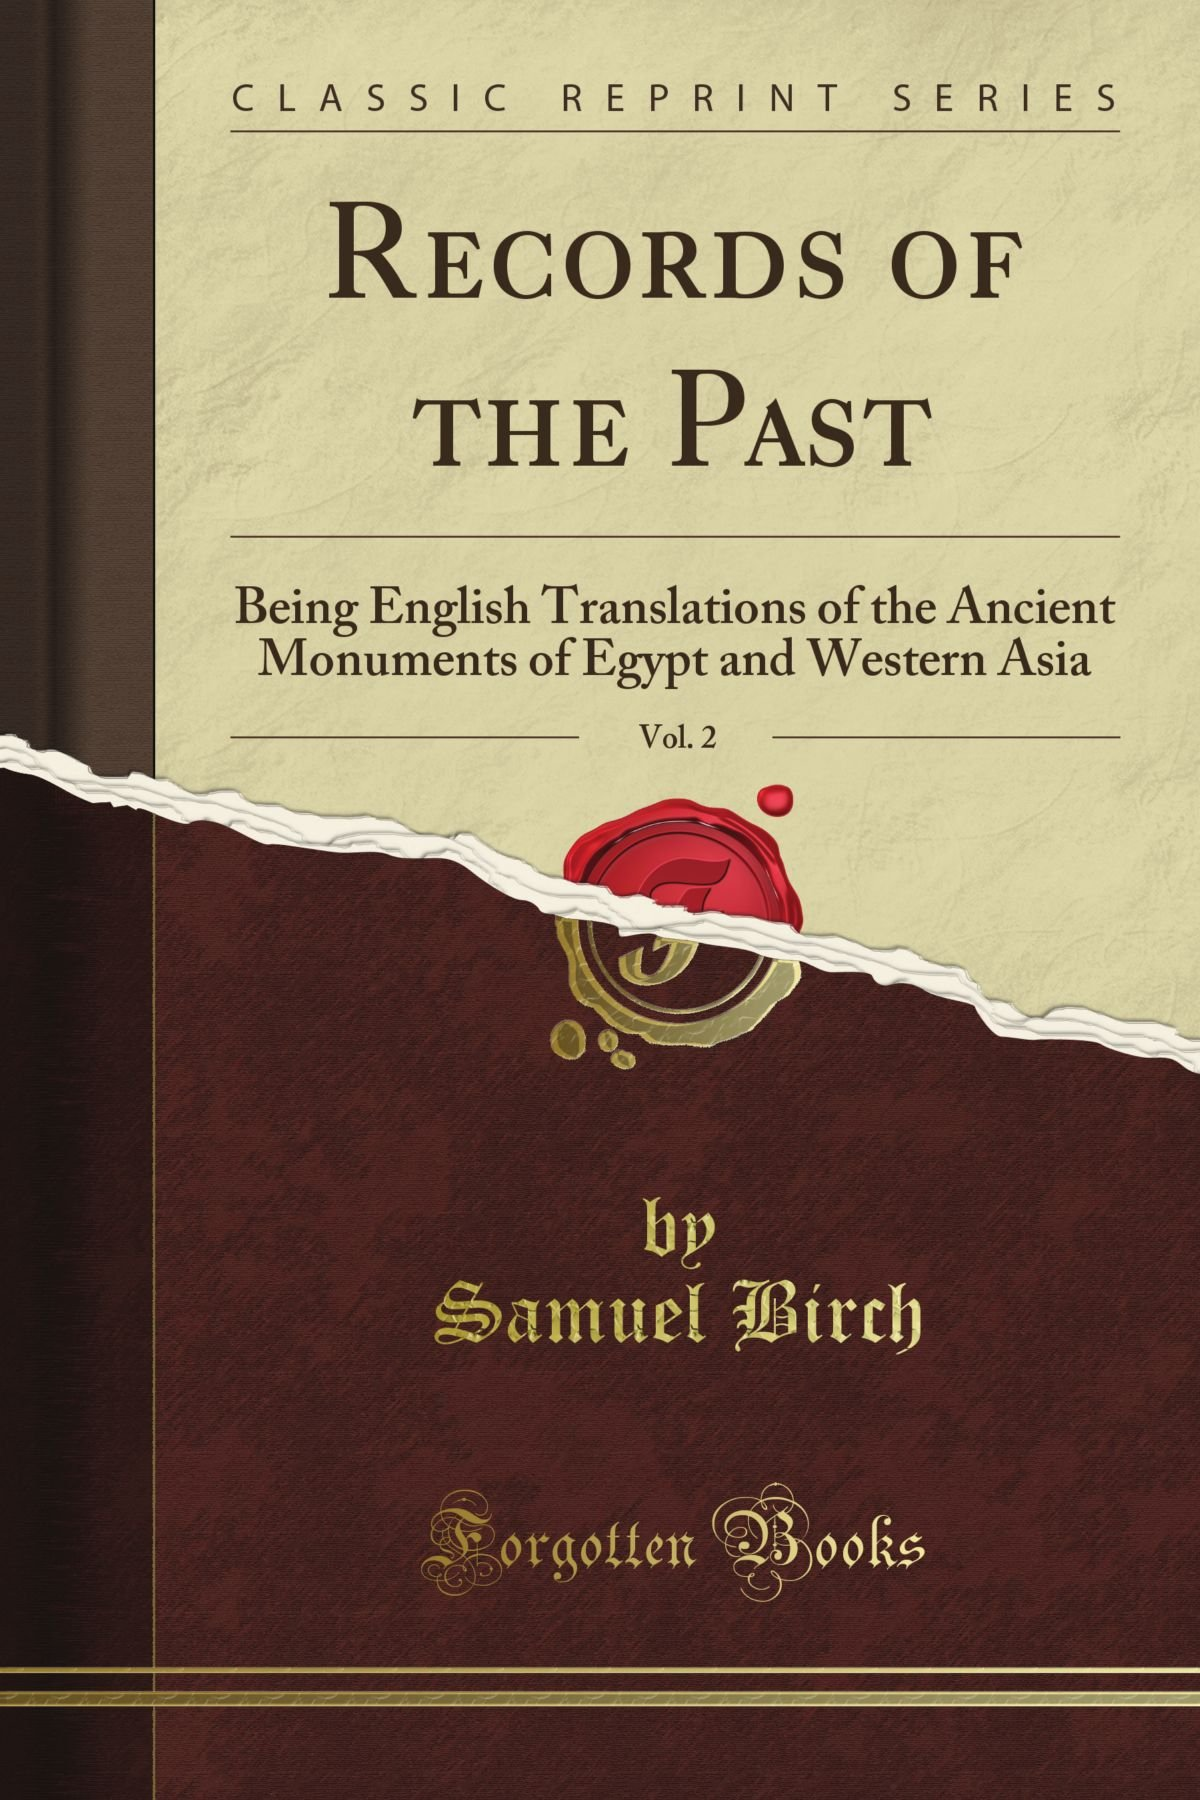 Read Online Records of the Past: Being English Translations of the Ancient Monuments of Egypt and Western Asia, Published Under the Sanction of the Society of Biblical Archaeology, Vol. 2 (Classic Reprint) ebook